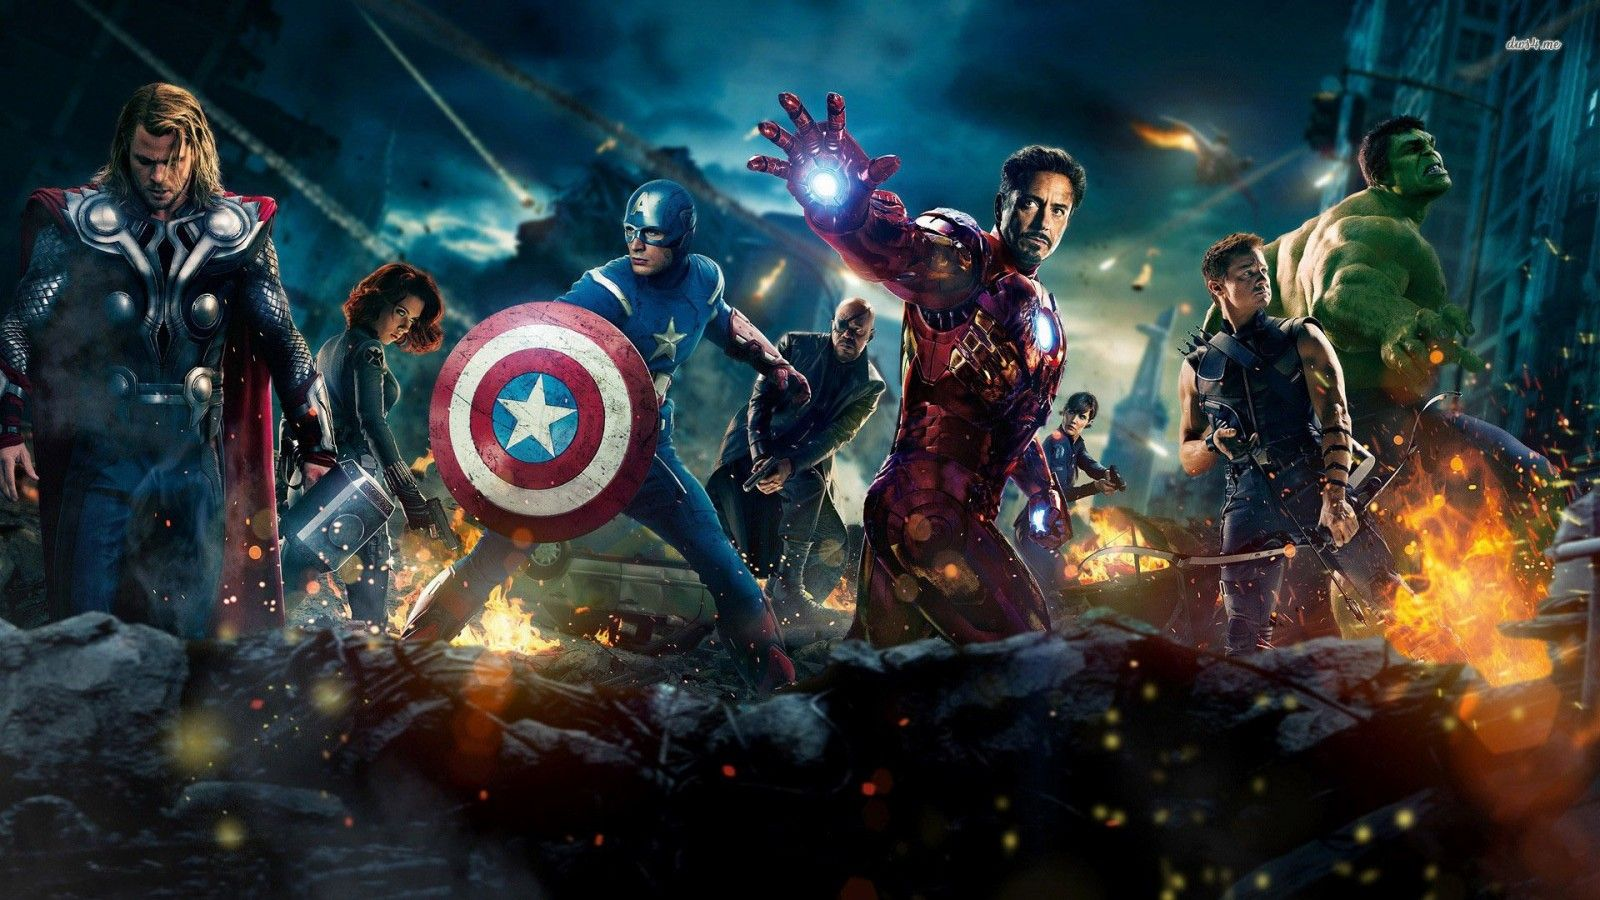 Avengers Desktop Wallpapers Top Free Avengers Desktop Backgrounds Wallpaperaccess